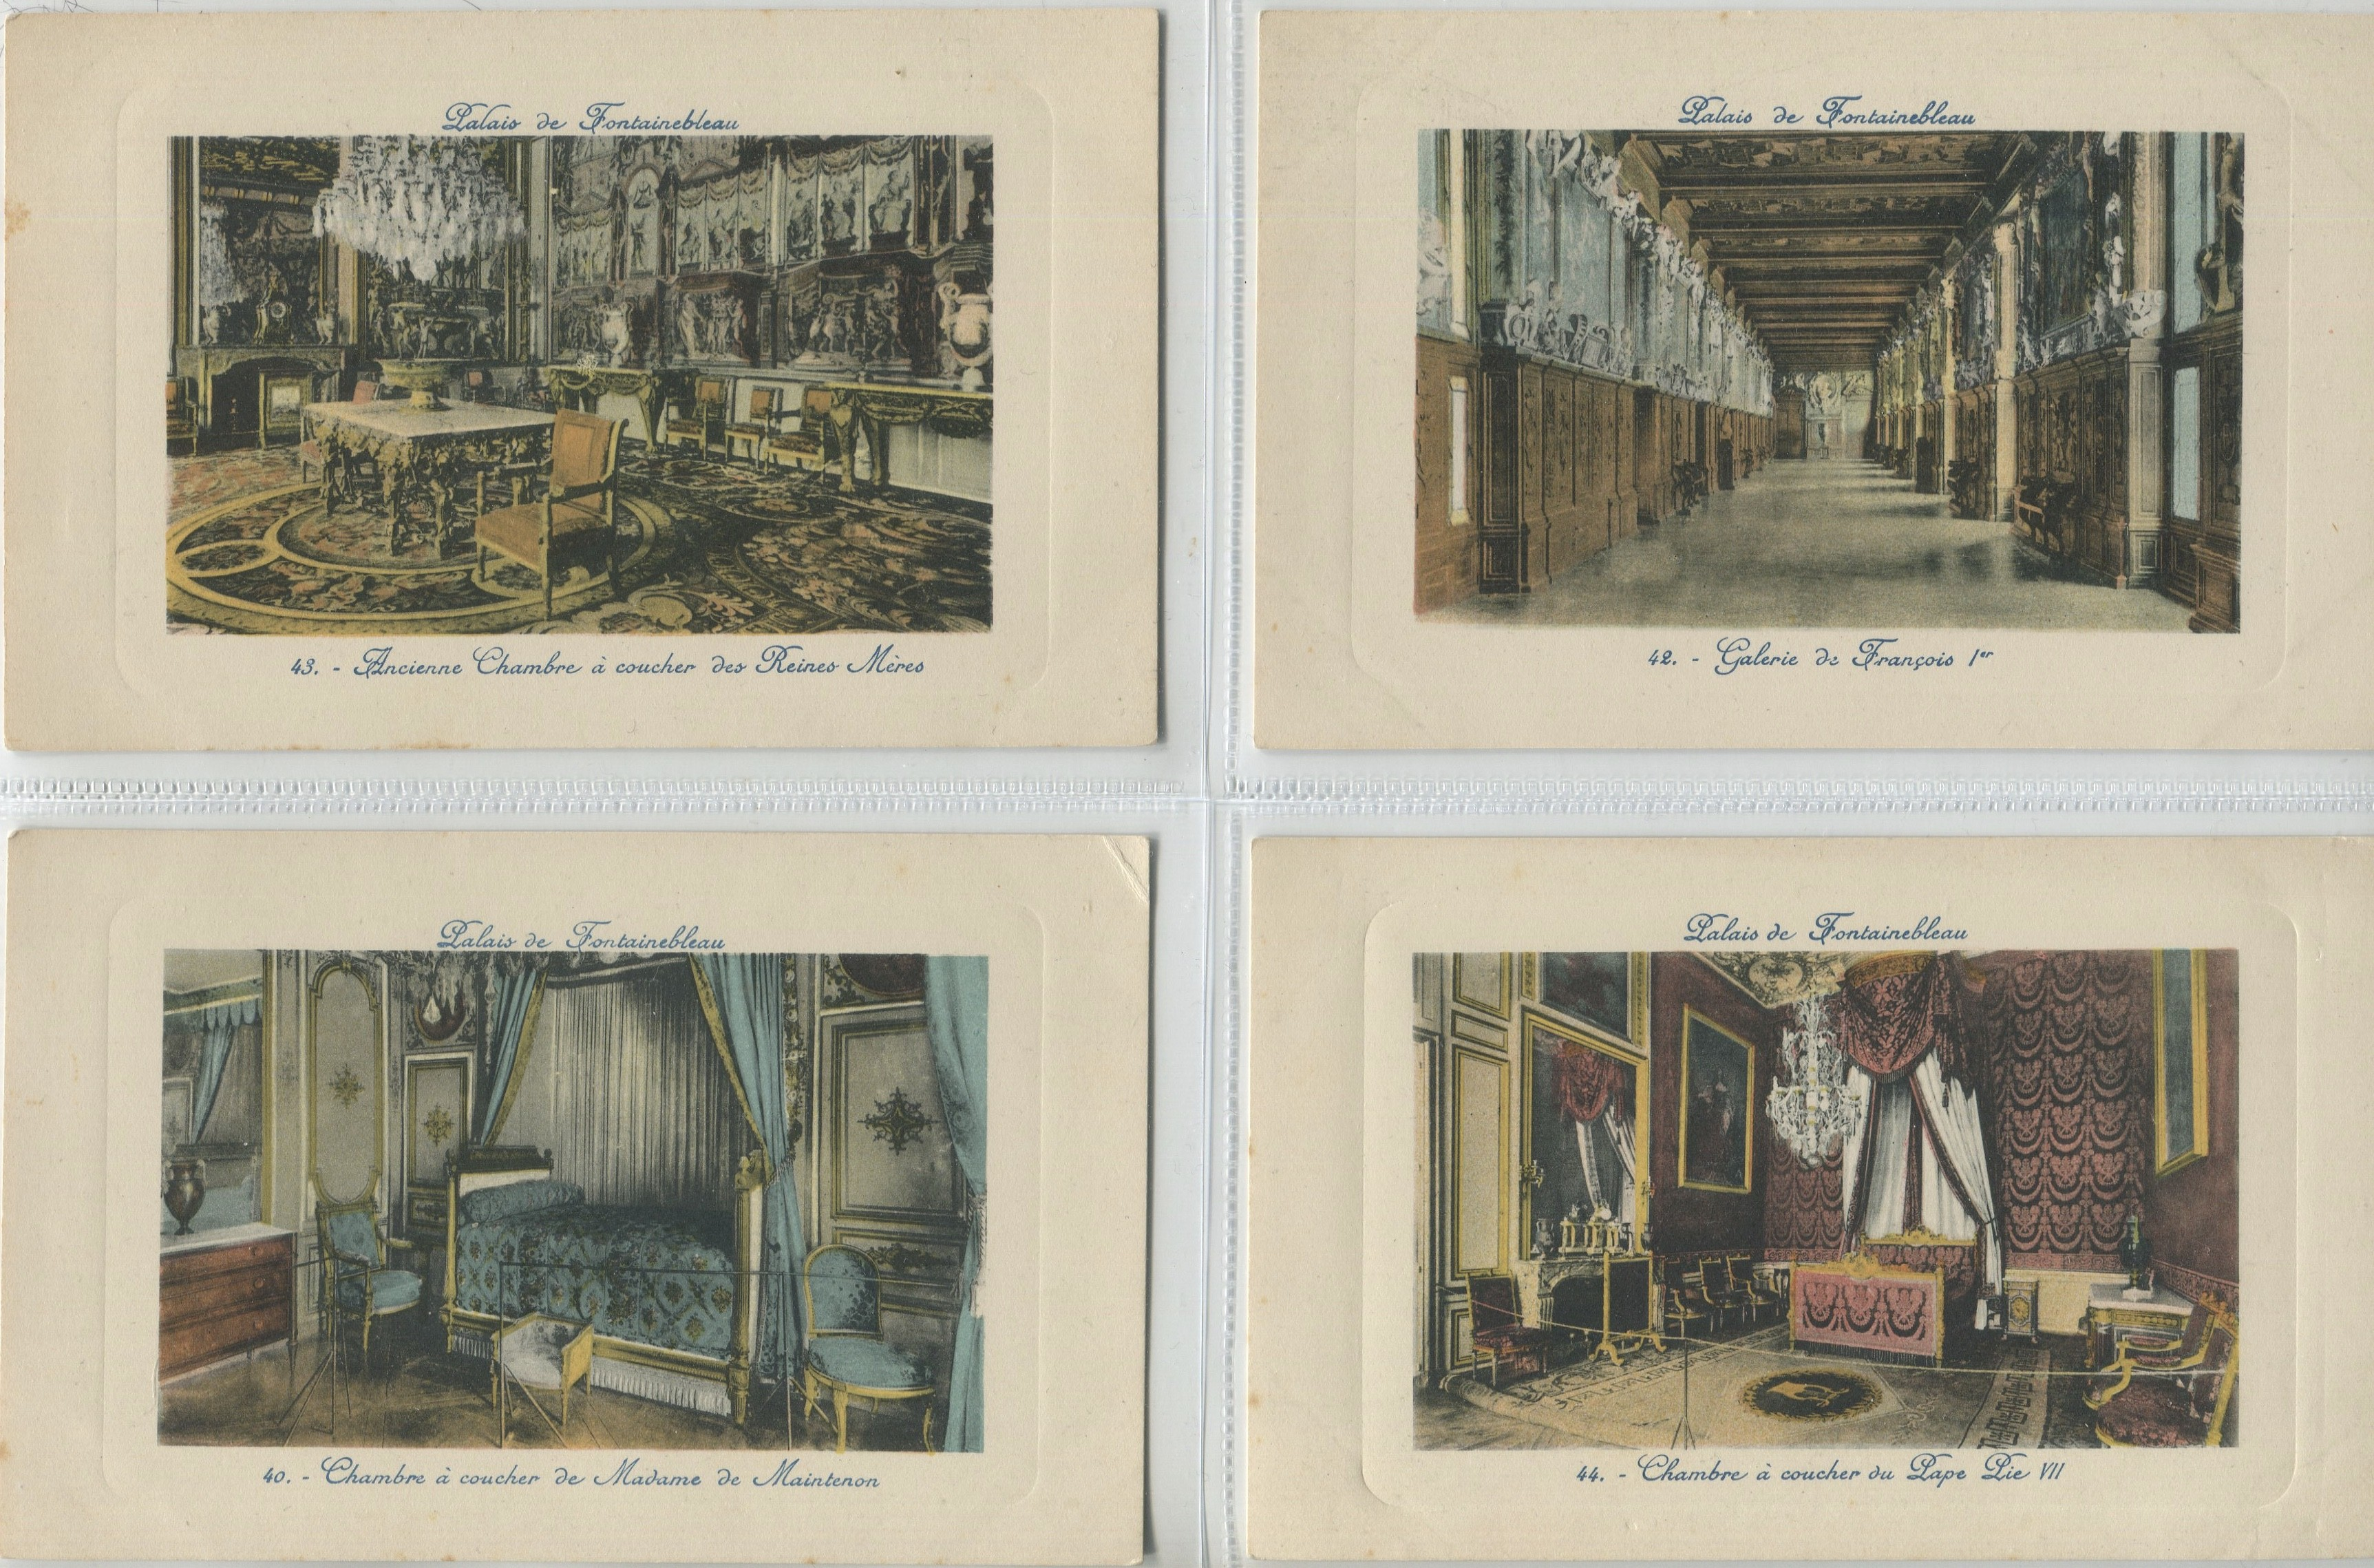 FOUR VINTAGE POSTCARDS OF PALAIS DE FONTAINEBLEAU